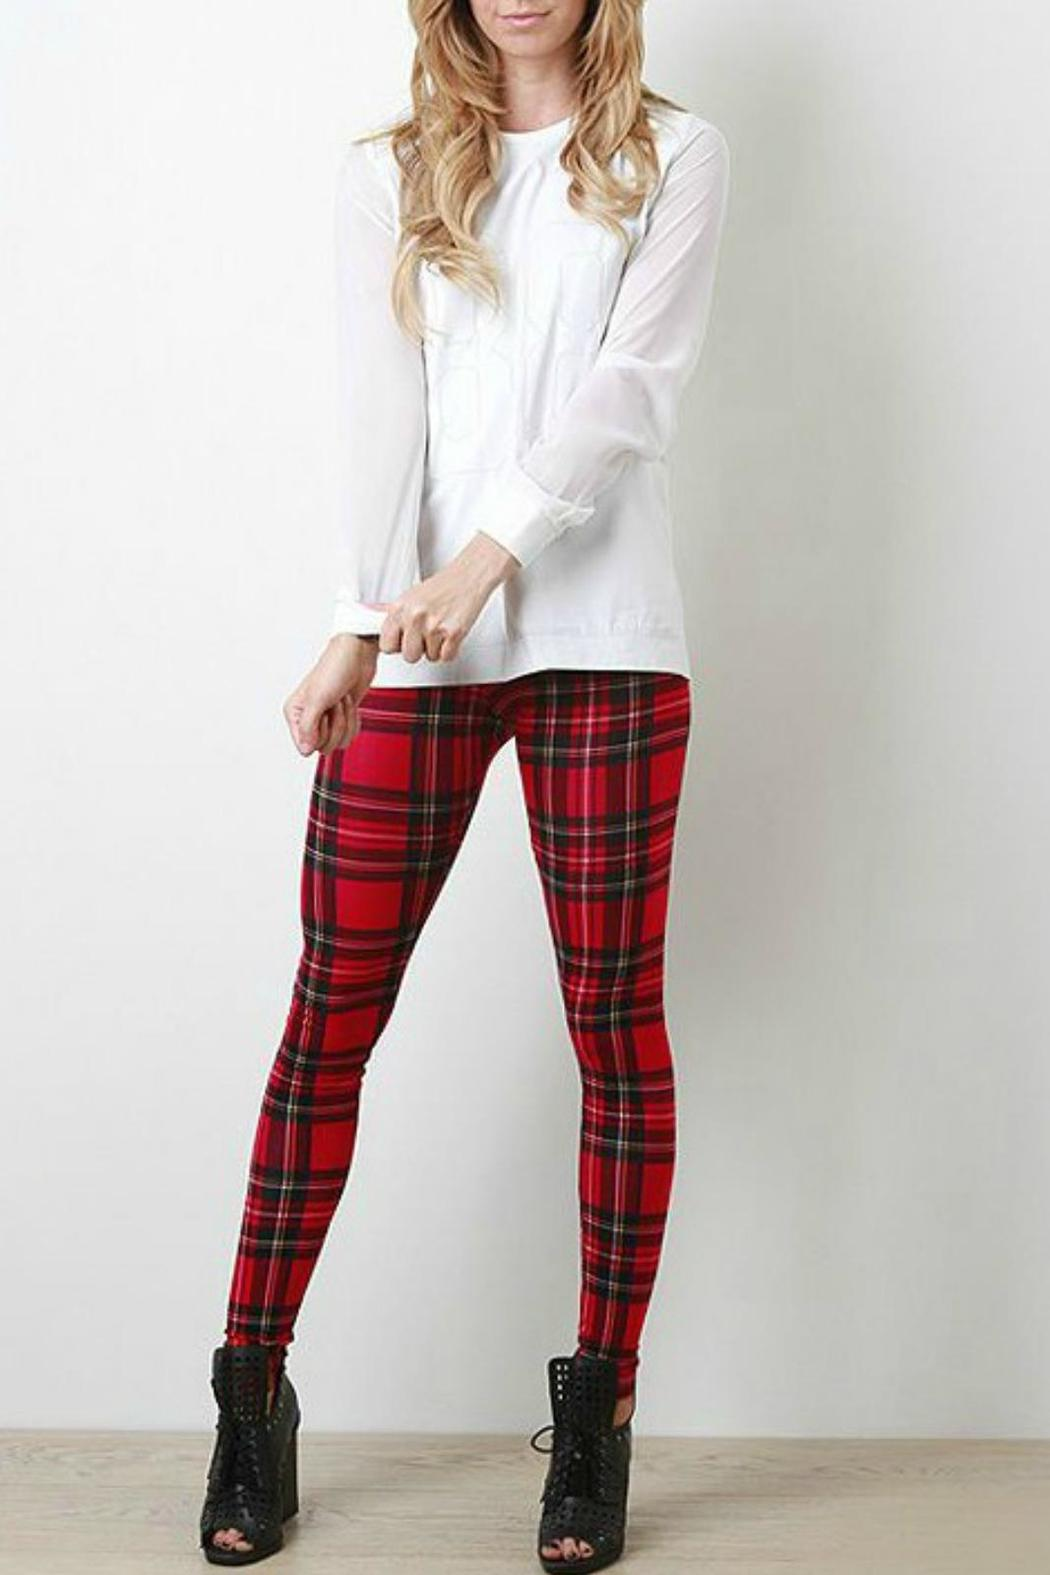 c31a99cf4df3c SoloLaFe Red Plaid Leggings from Washington by Boutique Bleu ...